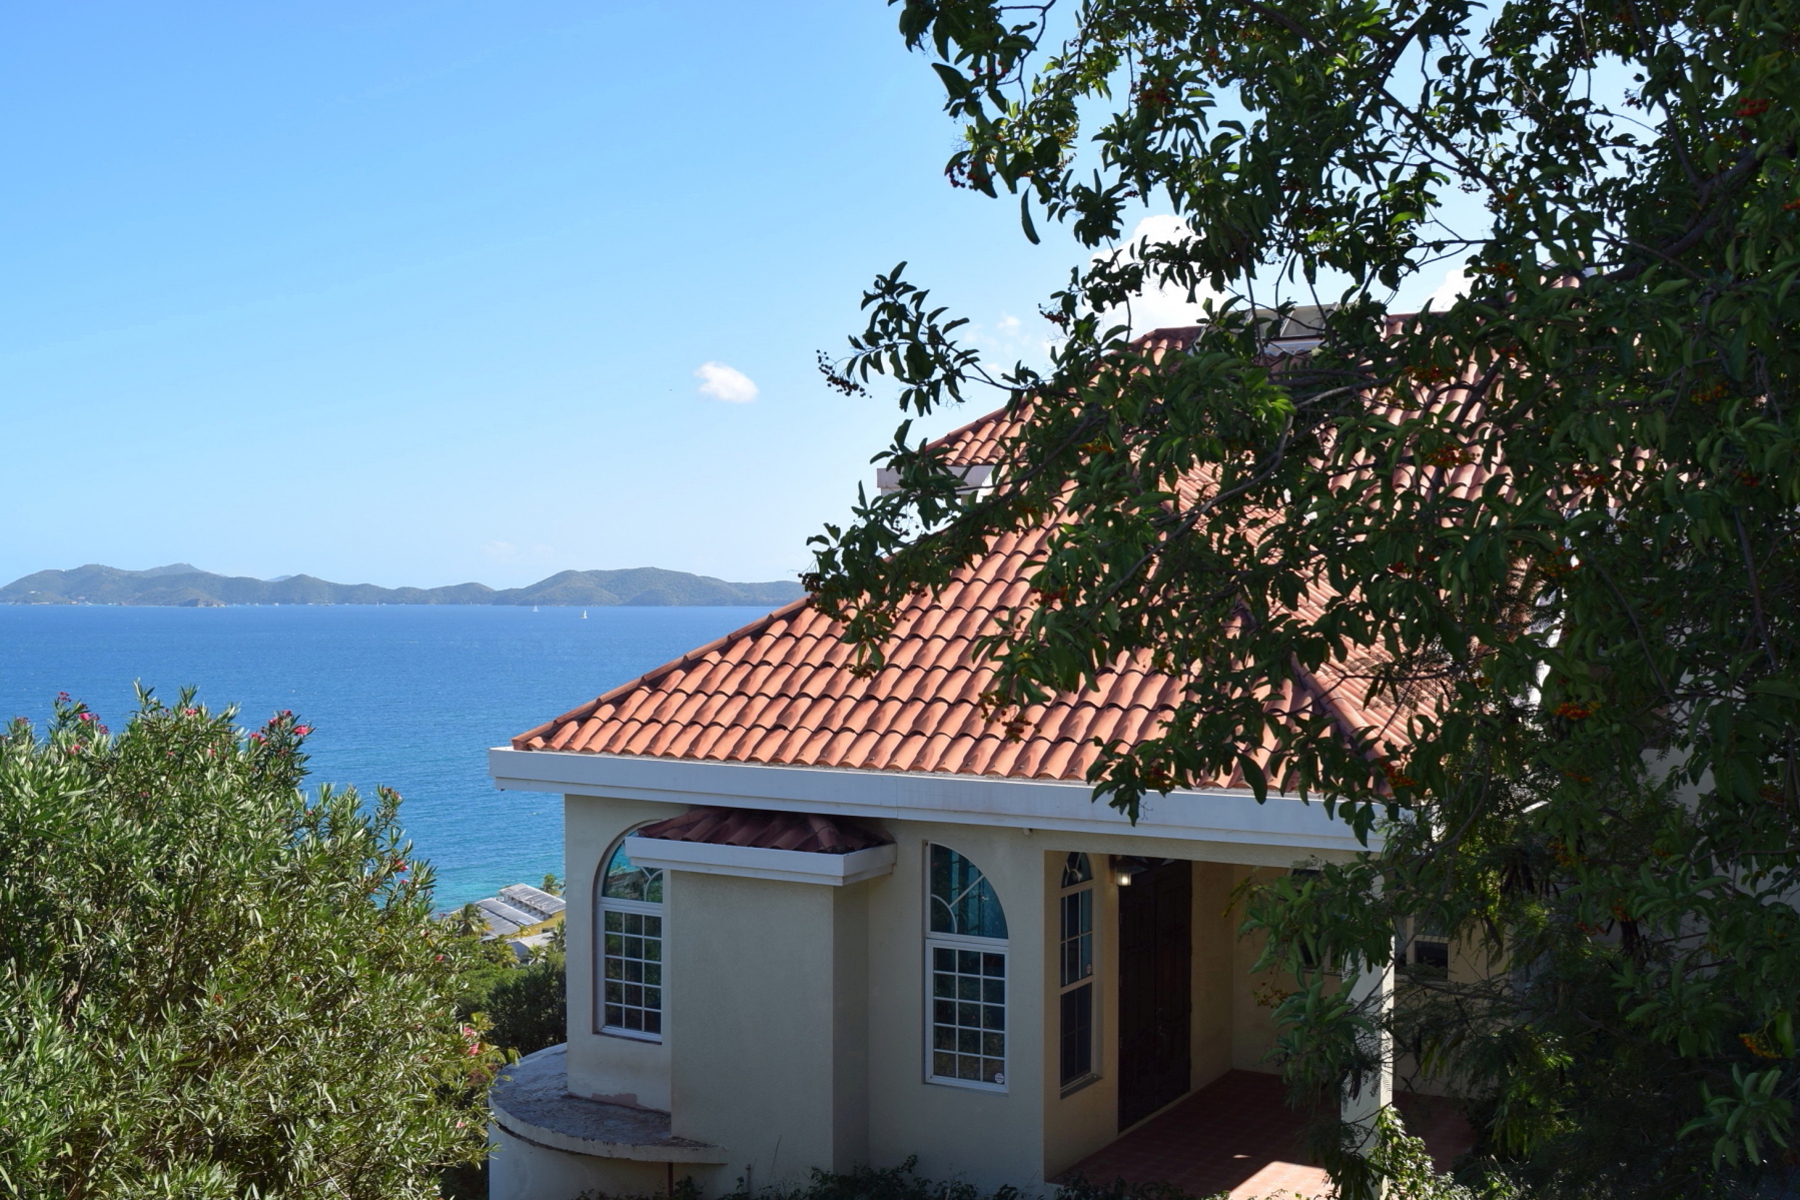 Single Family Home for Sale at Channel Island Breezes Other Tortola, Tortola, British Virgin Islands